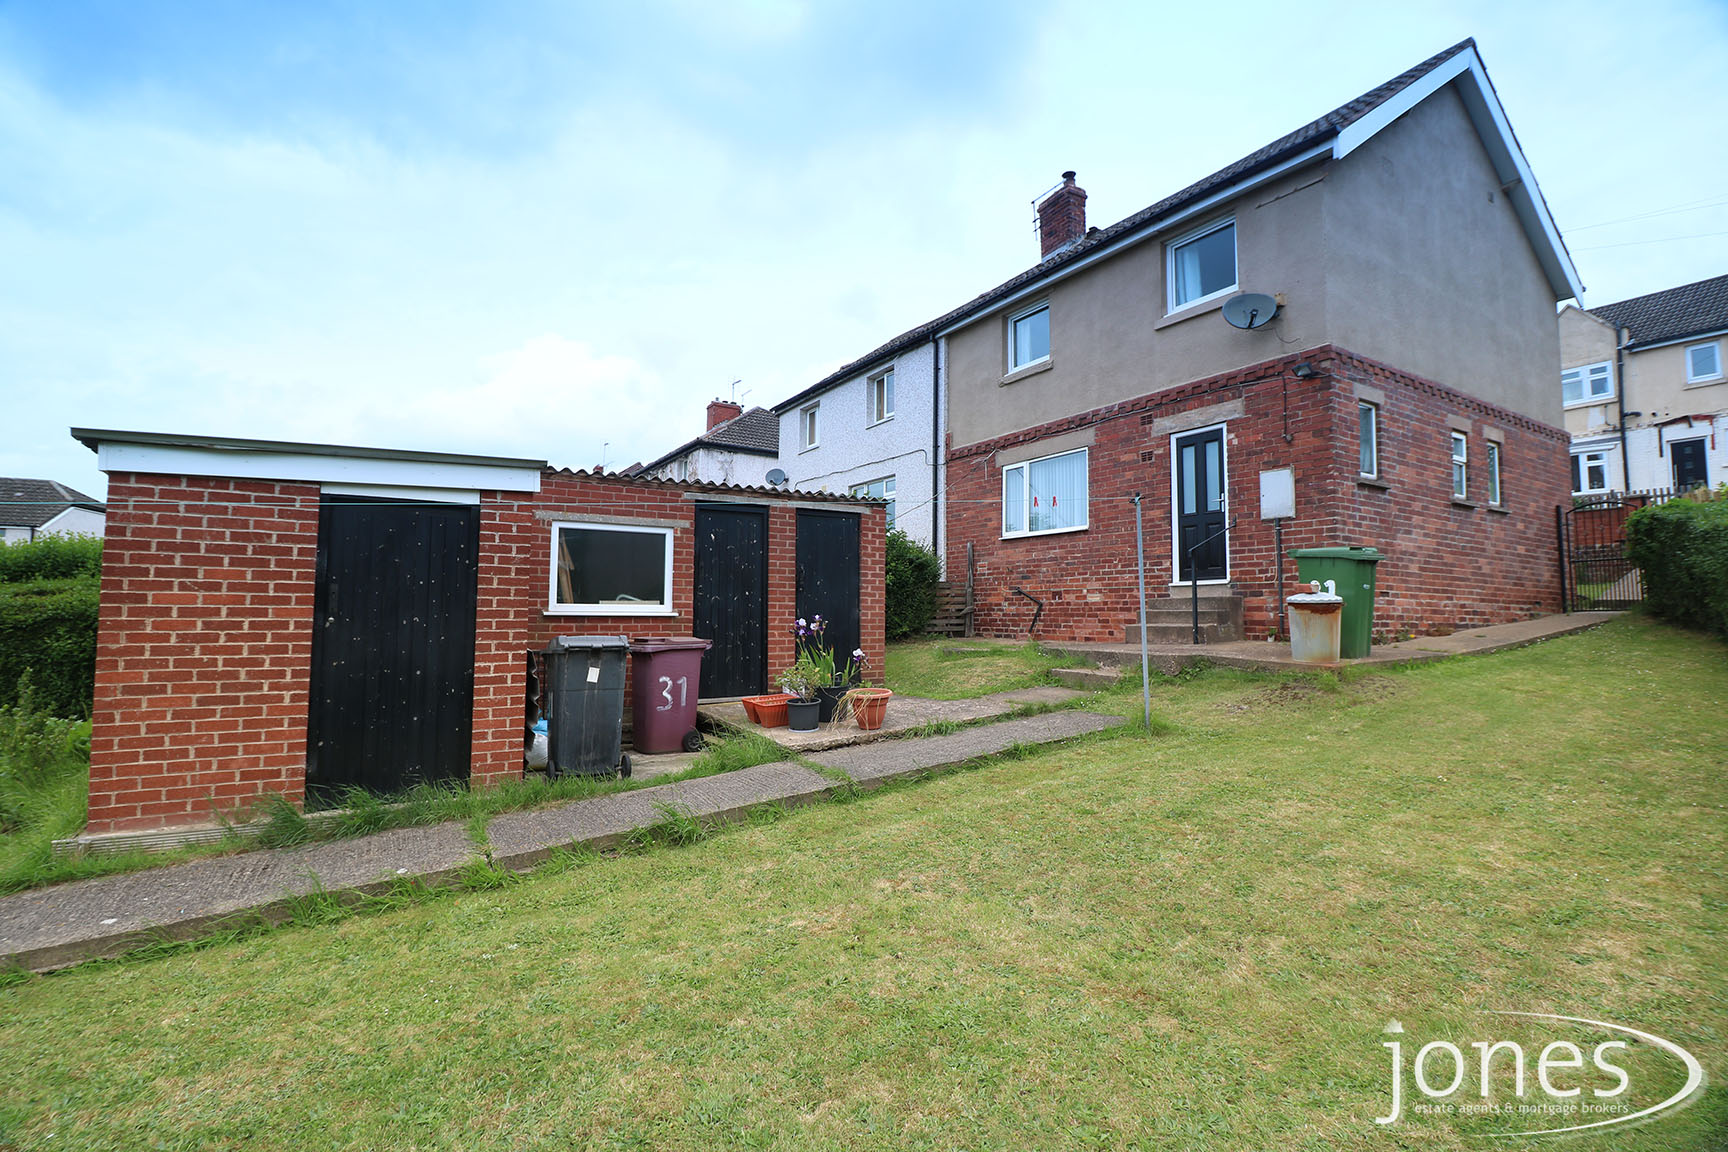 Home for Sale Let - Photo 11 Mill Crescent, Whitwell, Worksop, S80 4SF